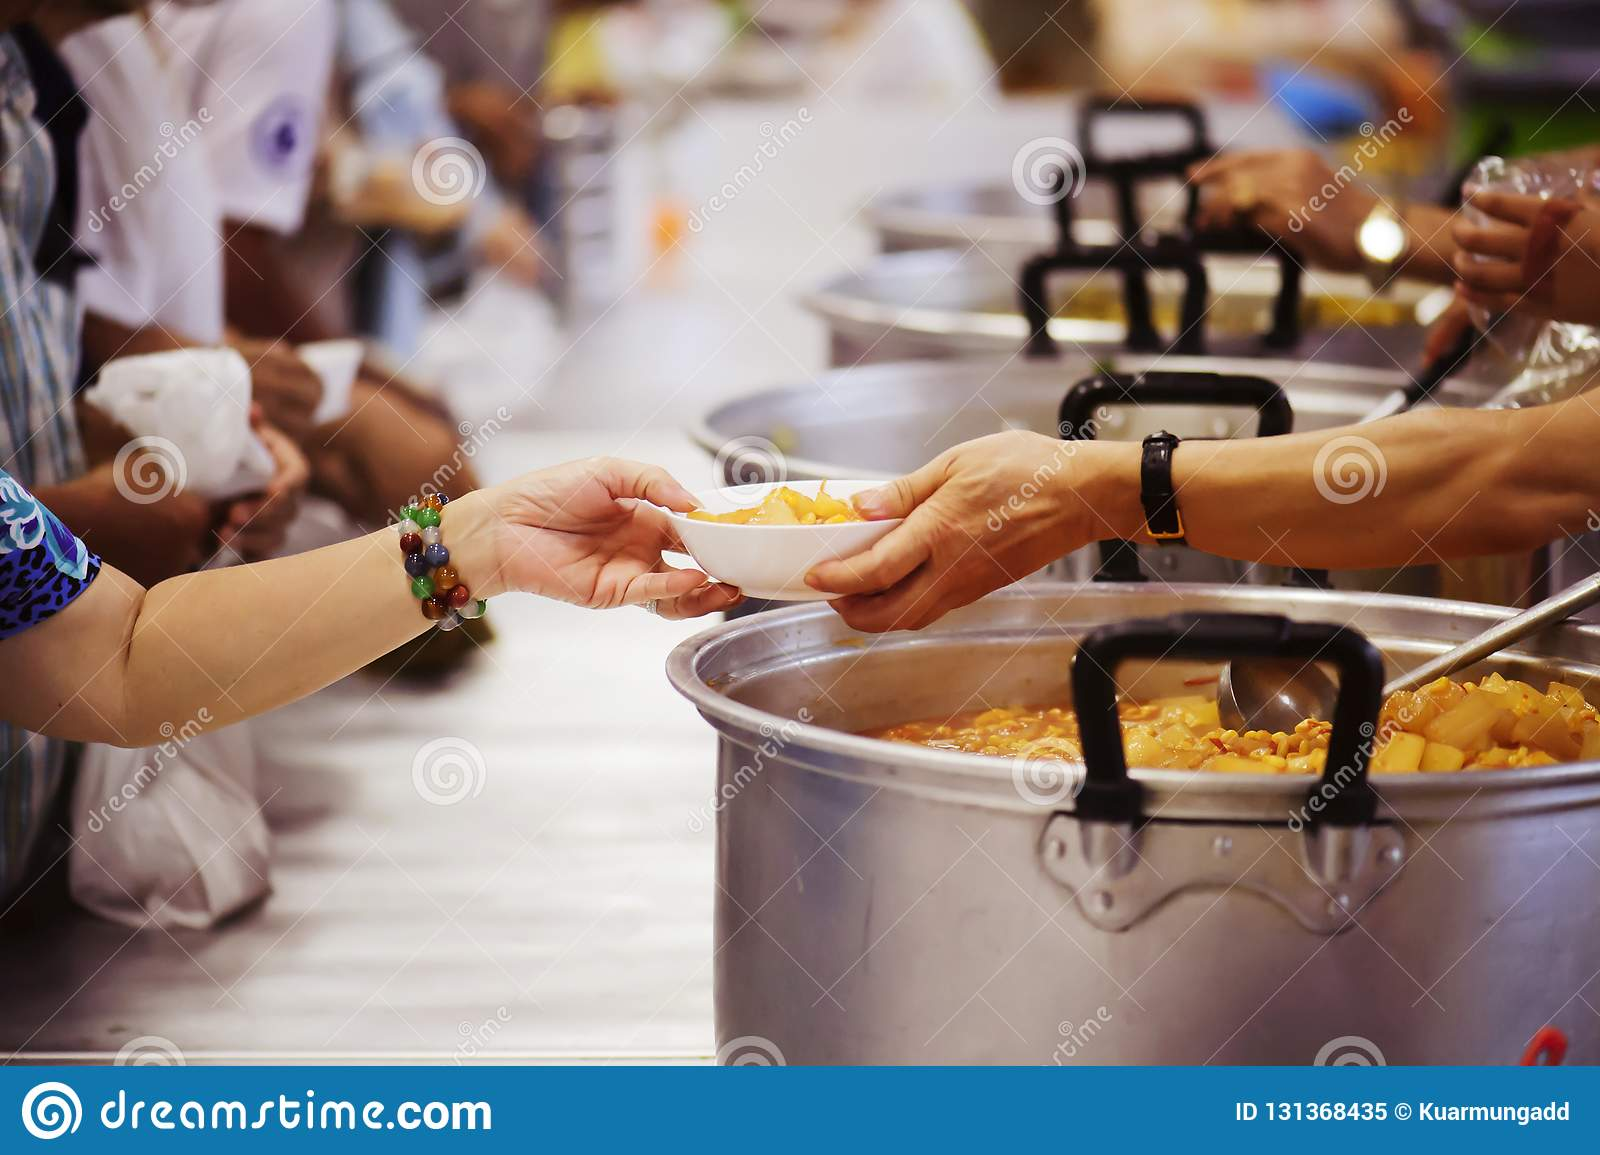 The hands of the poor receive food from the hands of the philanthropist : concept of giving